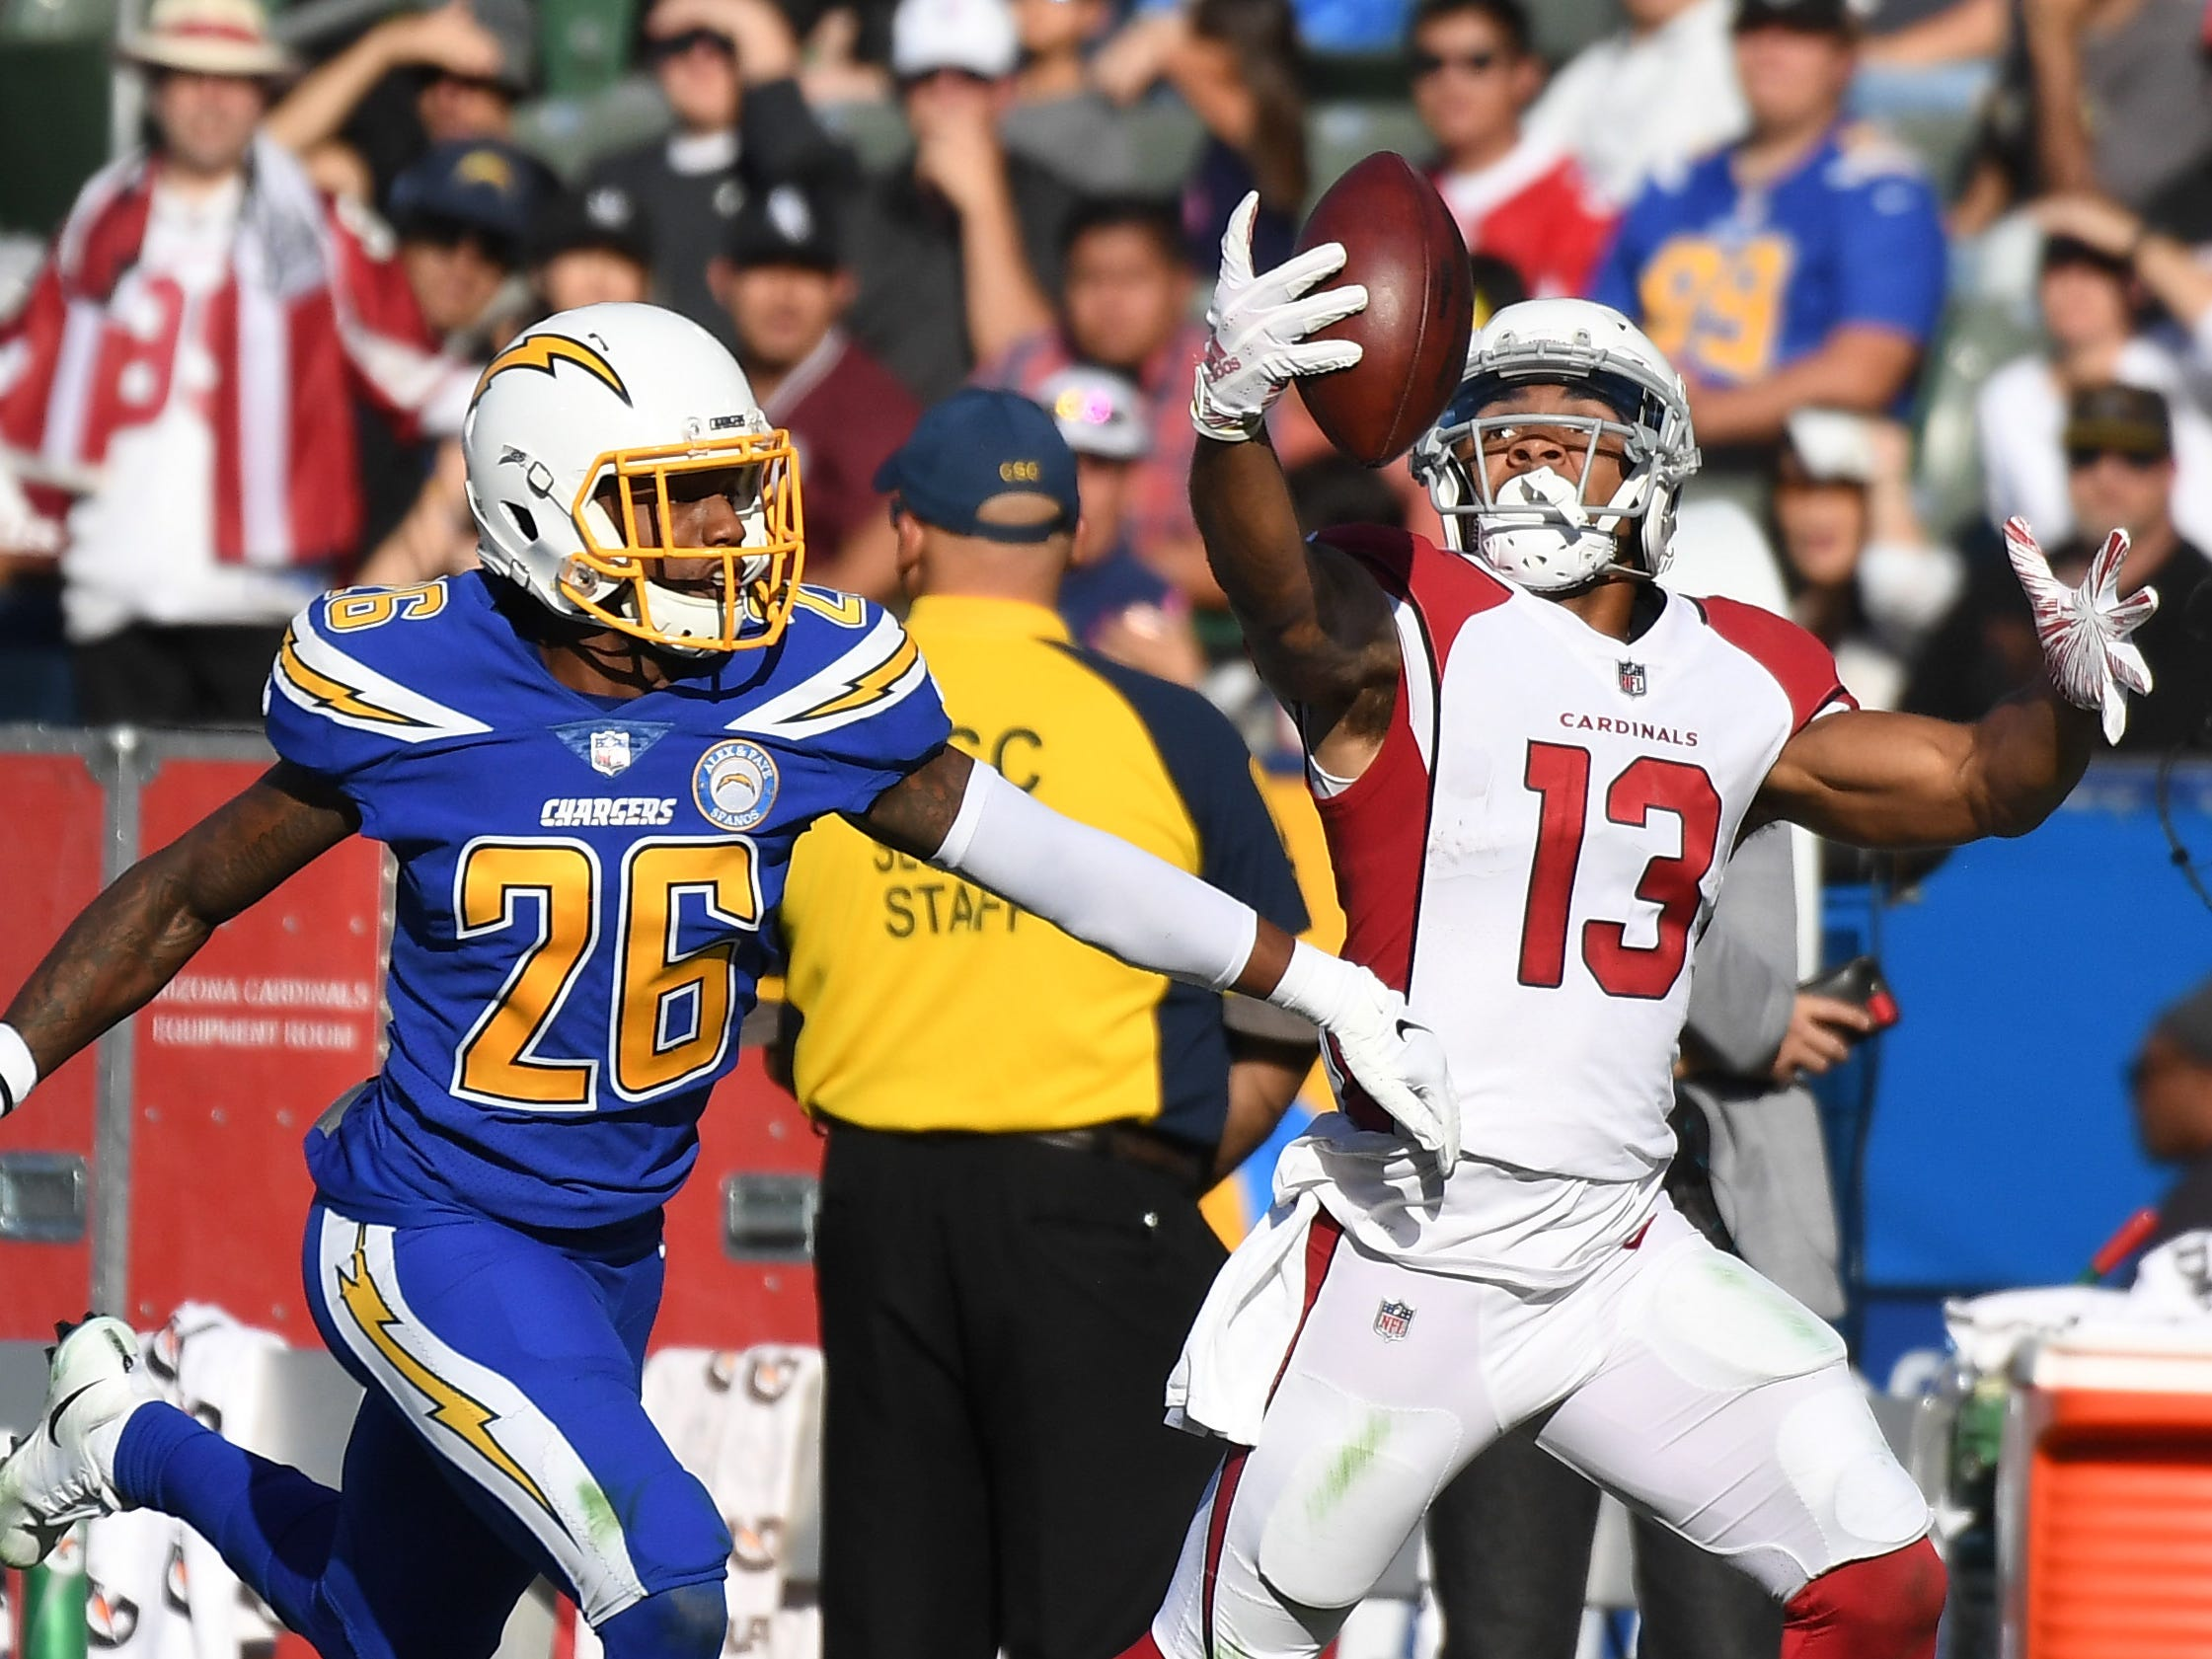 Nov 25, 2018; Carson, CA, USA; Arizona Cardinals wide receiver Christian Kirk (13) cannot catch a pass while defended by Los Angeles Chargers cornerback Casey Hayward (26) in the first half at the StubHub Center. Mandatory Credit: Richard Mackson-USA TODAY Sports